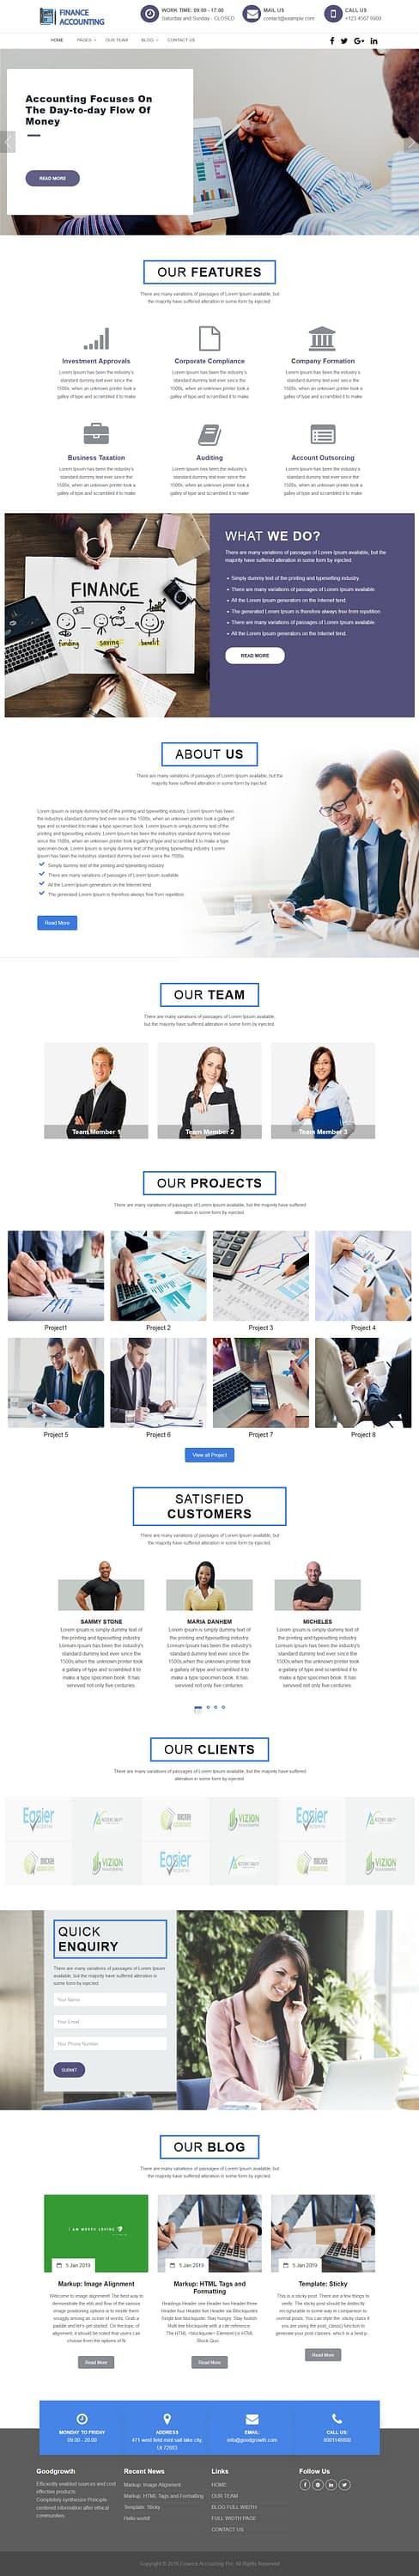 finance accounting best free accounting wordpress themes - 10+ Best Free Accounting WordPress Themes